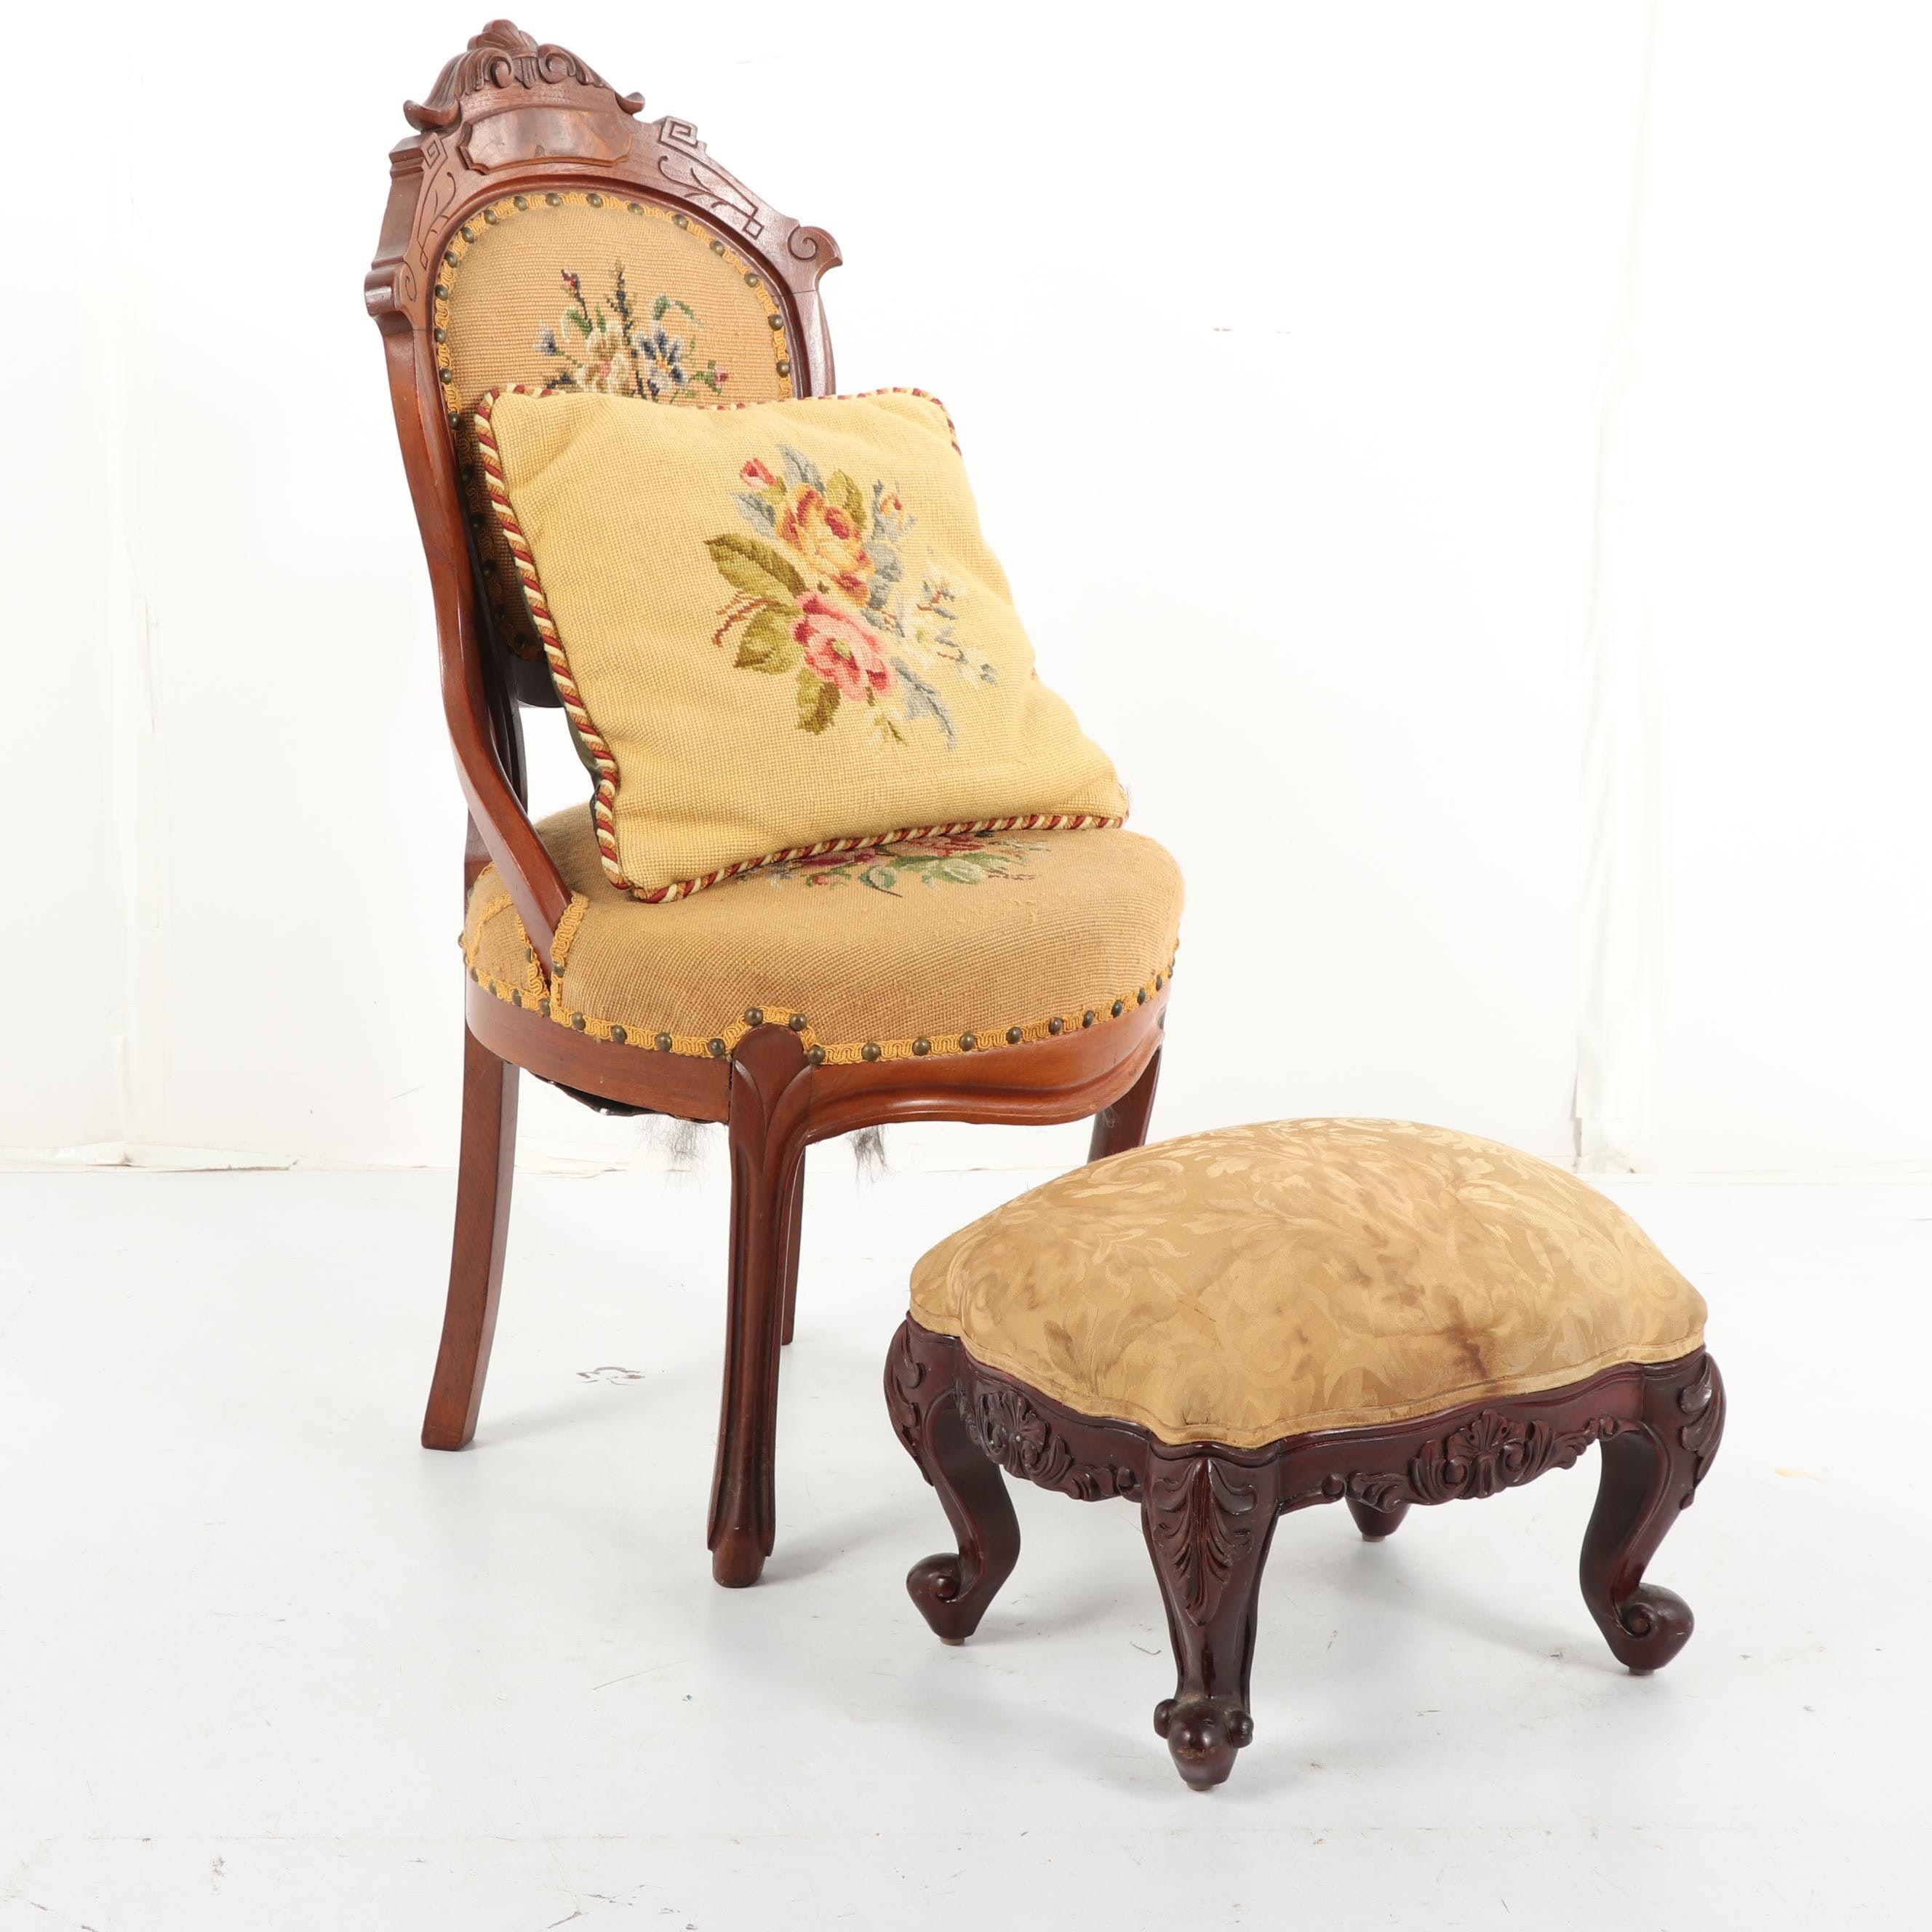 Victorian Walnut Side Chair with Footstool, Early 20th Century